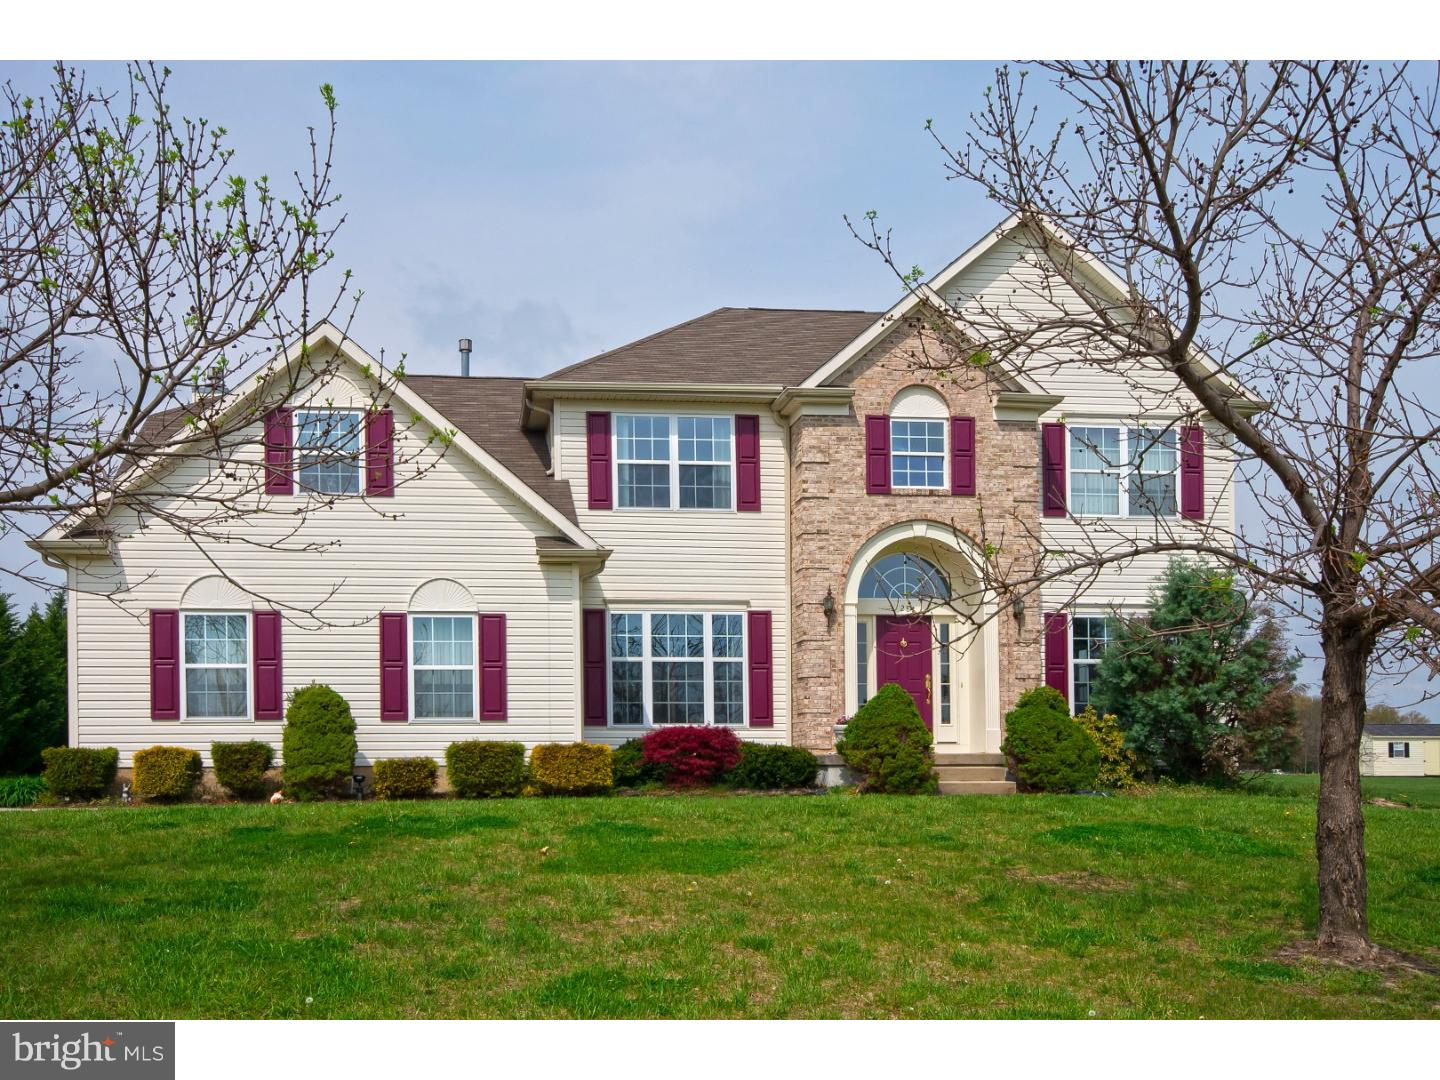 28 BROOK LANE, LUMBERTON, NJ 08048